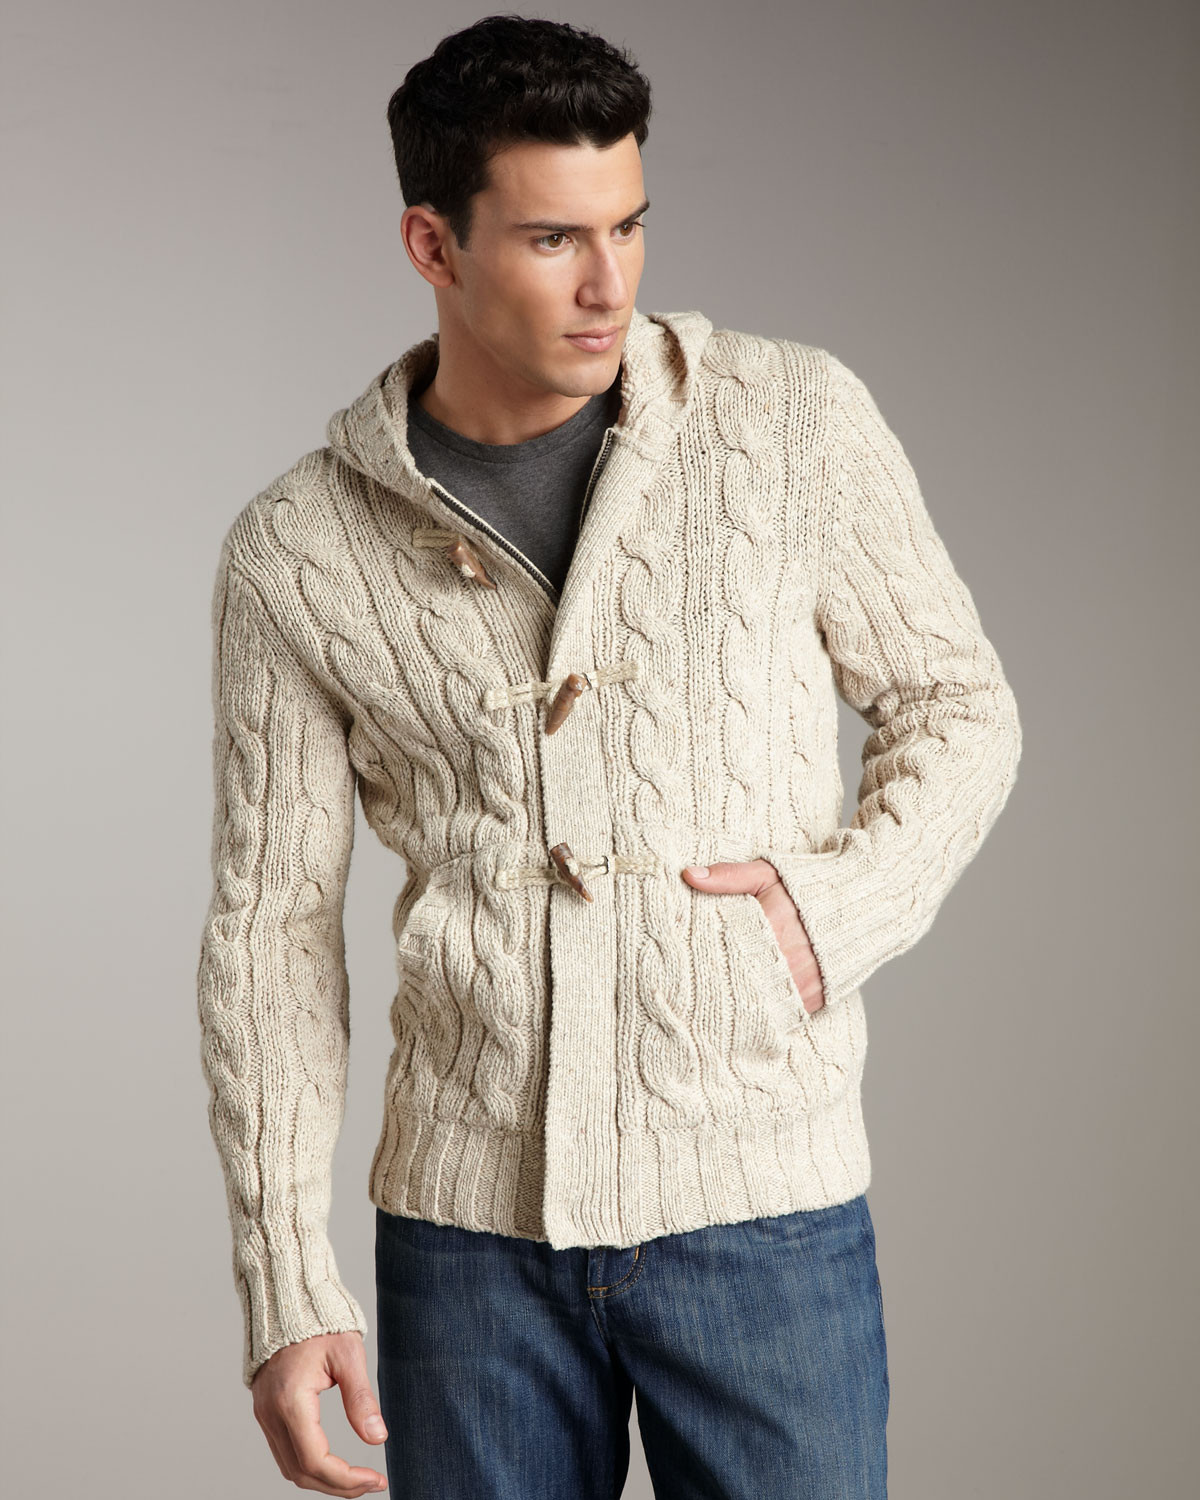 New Vince Cable Knit toggle Cardigan In Natural for Men Mens Cable Cardigan Of Top 48 Pics Mens Cable Cardigan